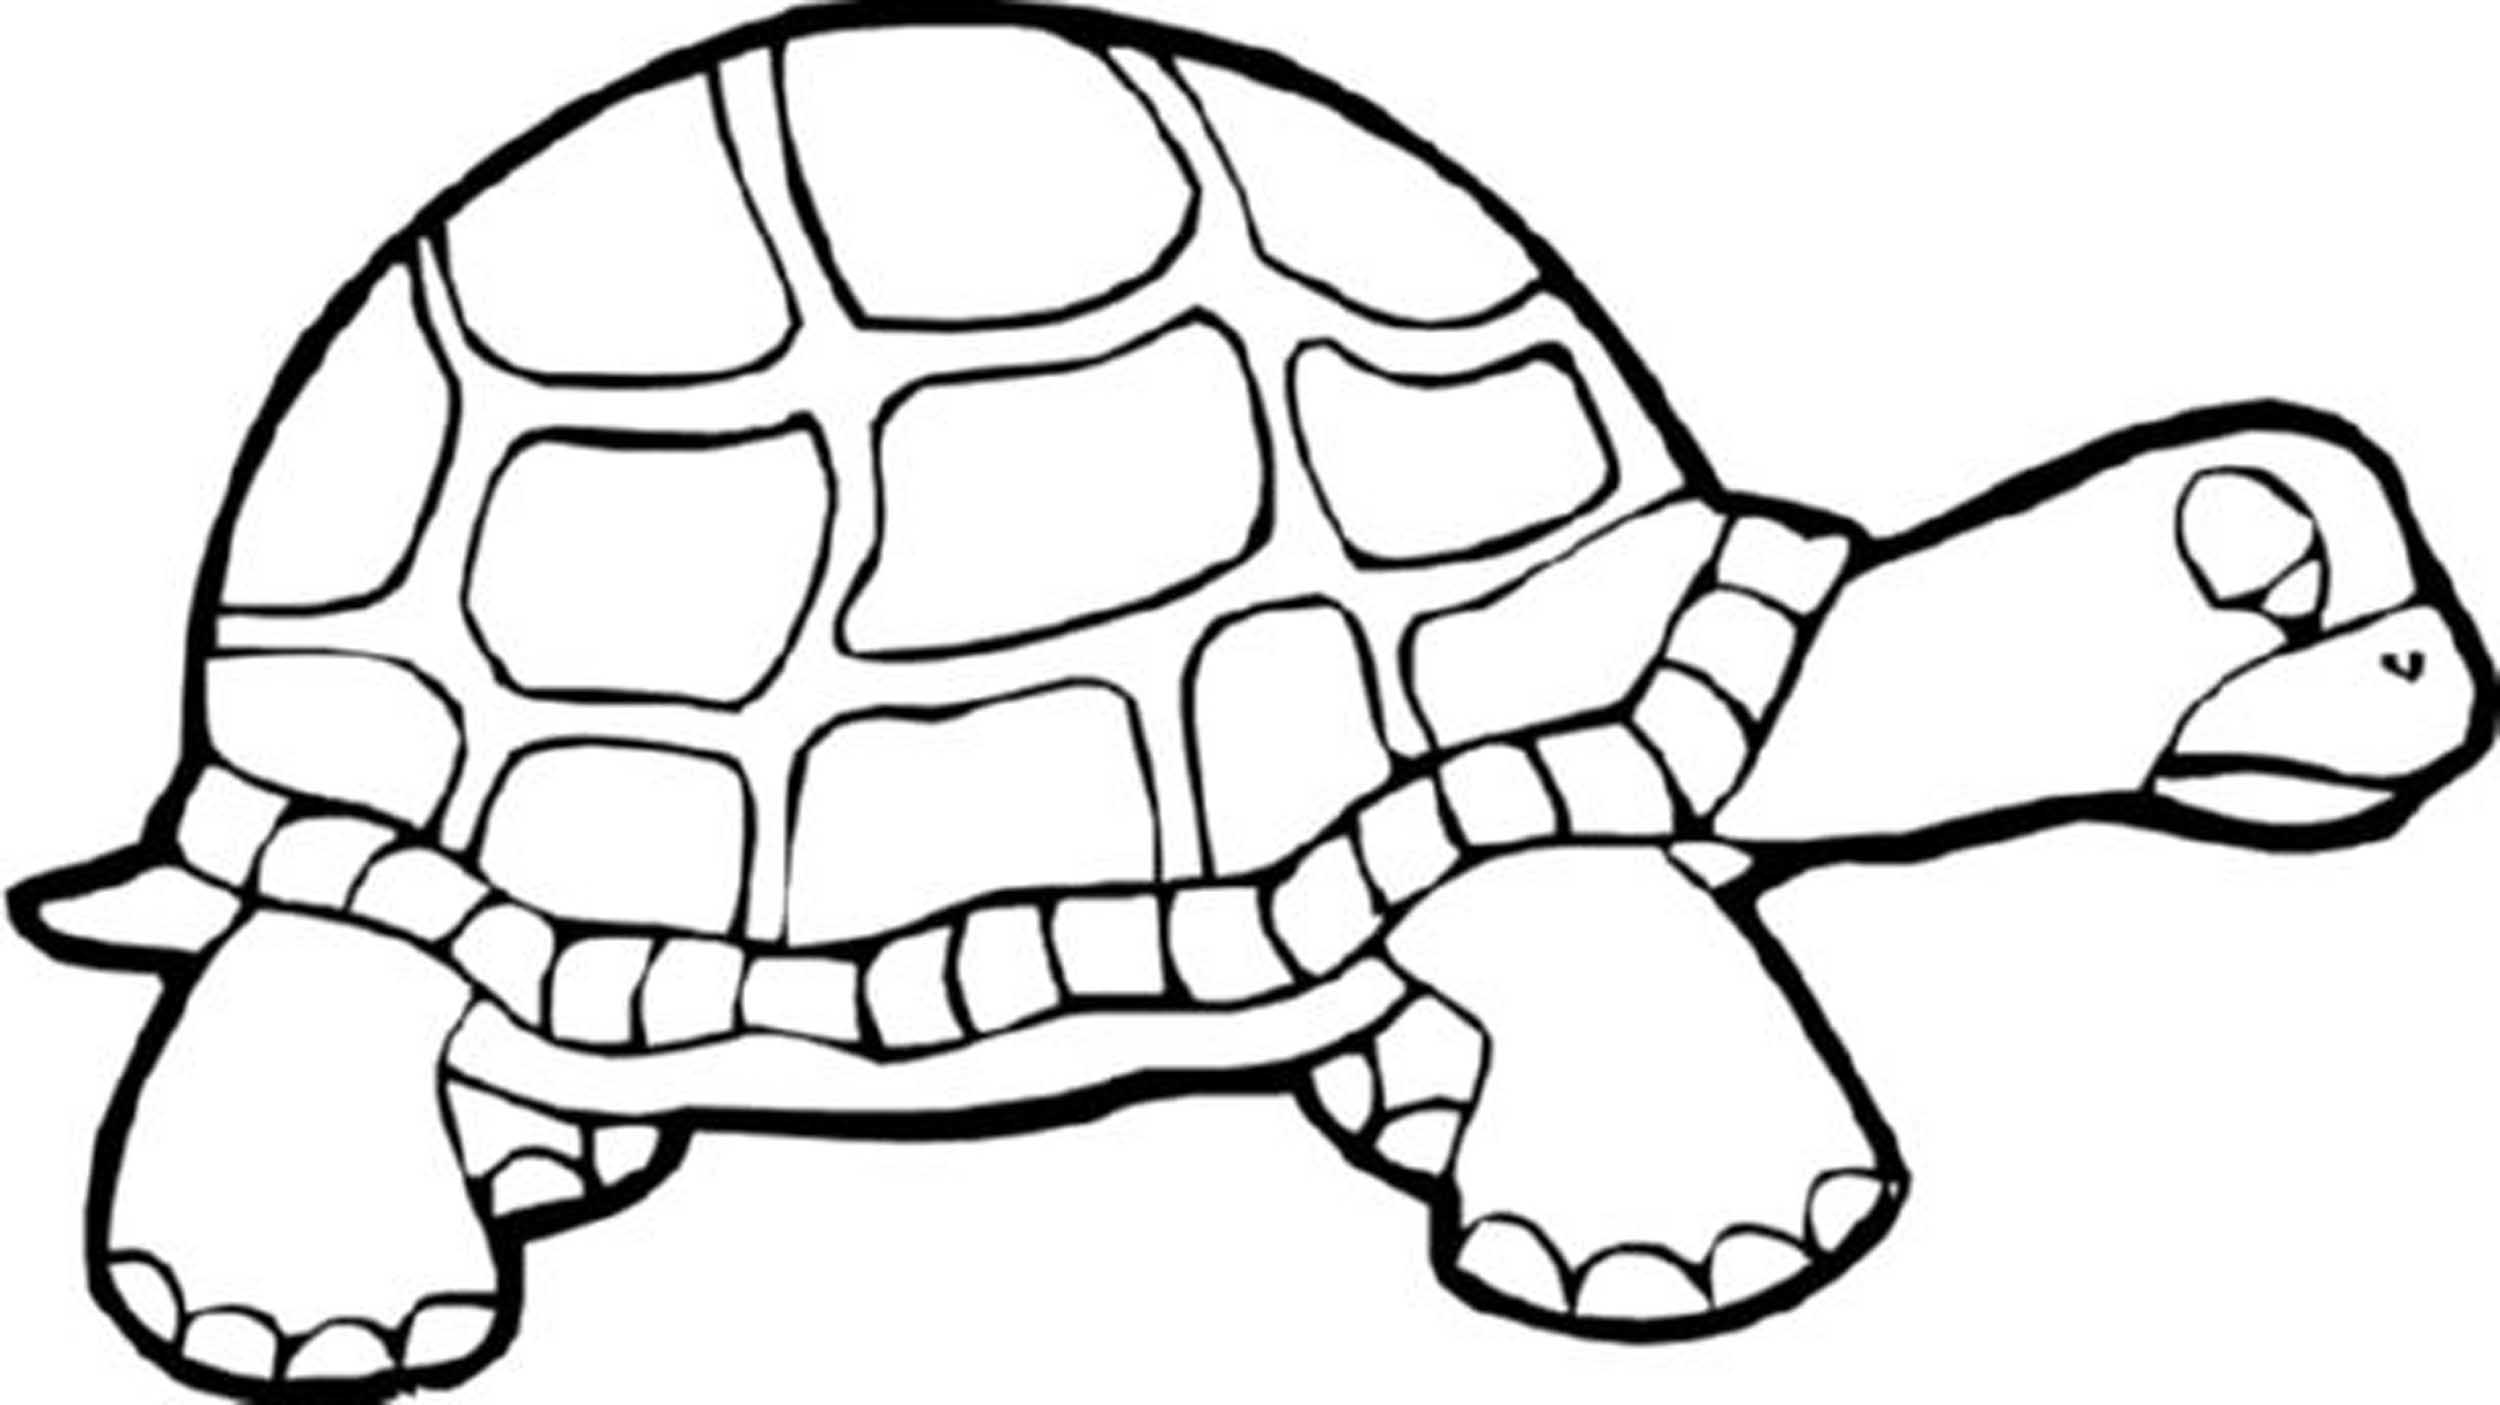 turtle printable coloring pages cute turtle coloring pages printable coloring pages turtle